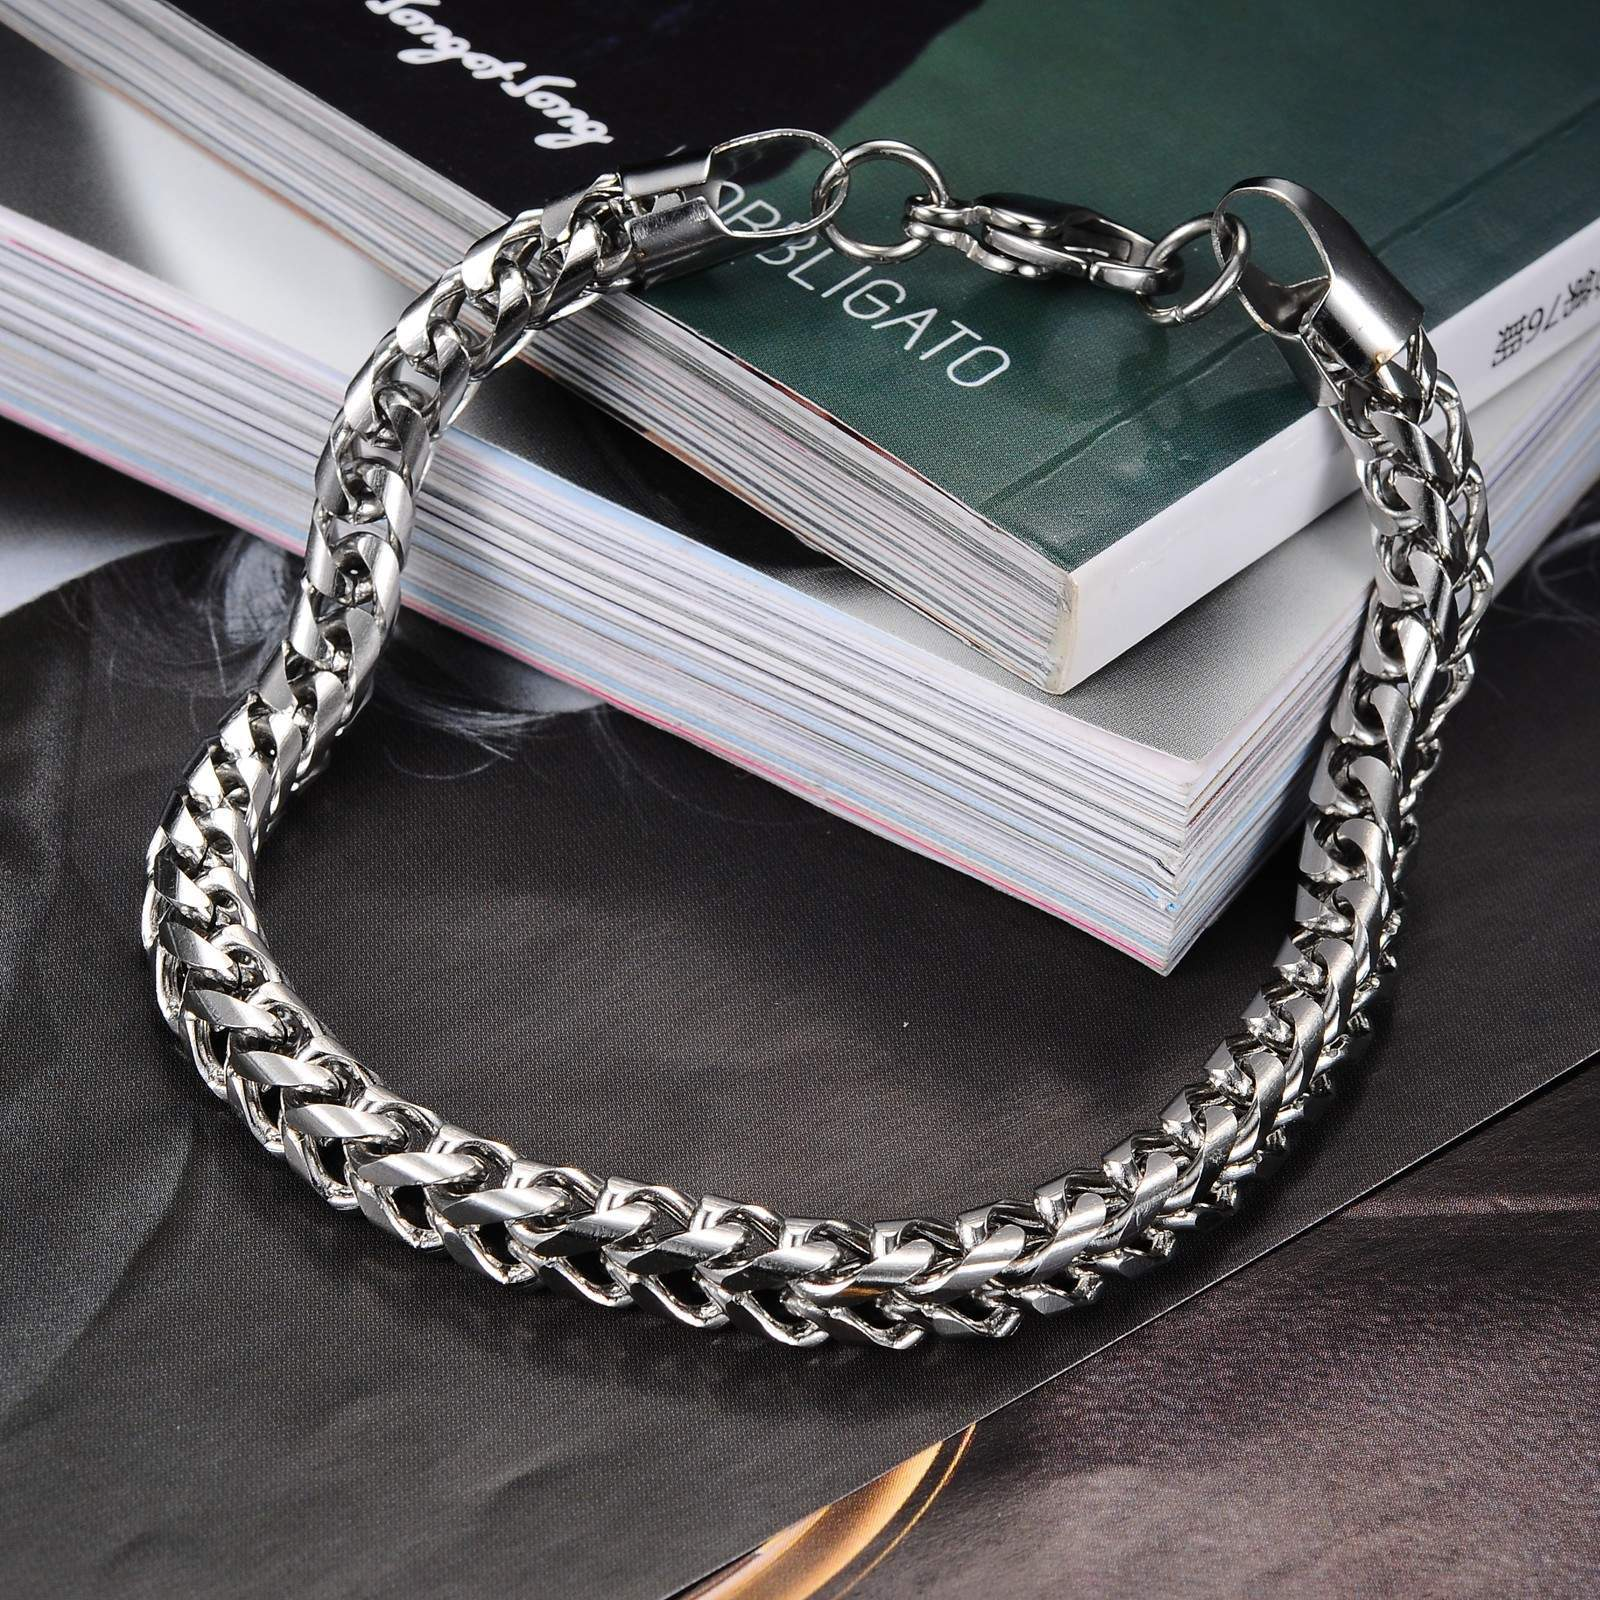 Hot Sale Summer Style Hand Chain Man Stainless Steel Snake Bracelet & Bangles Men Accessories Jewelry Gift for Best Friend(China (Mainland))